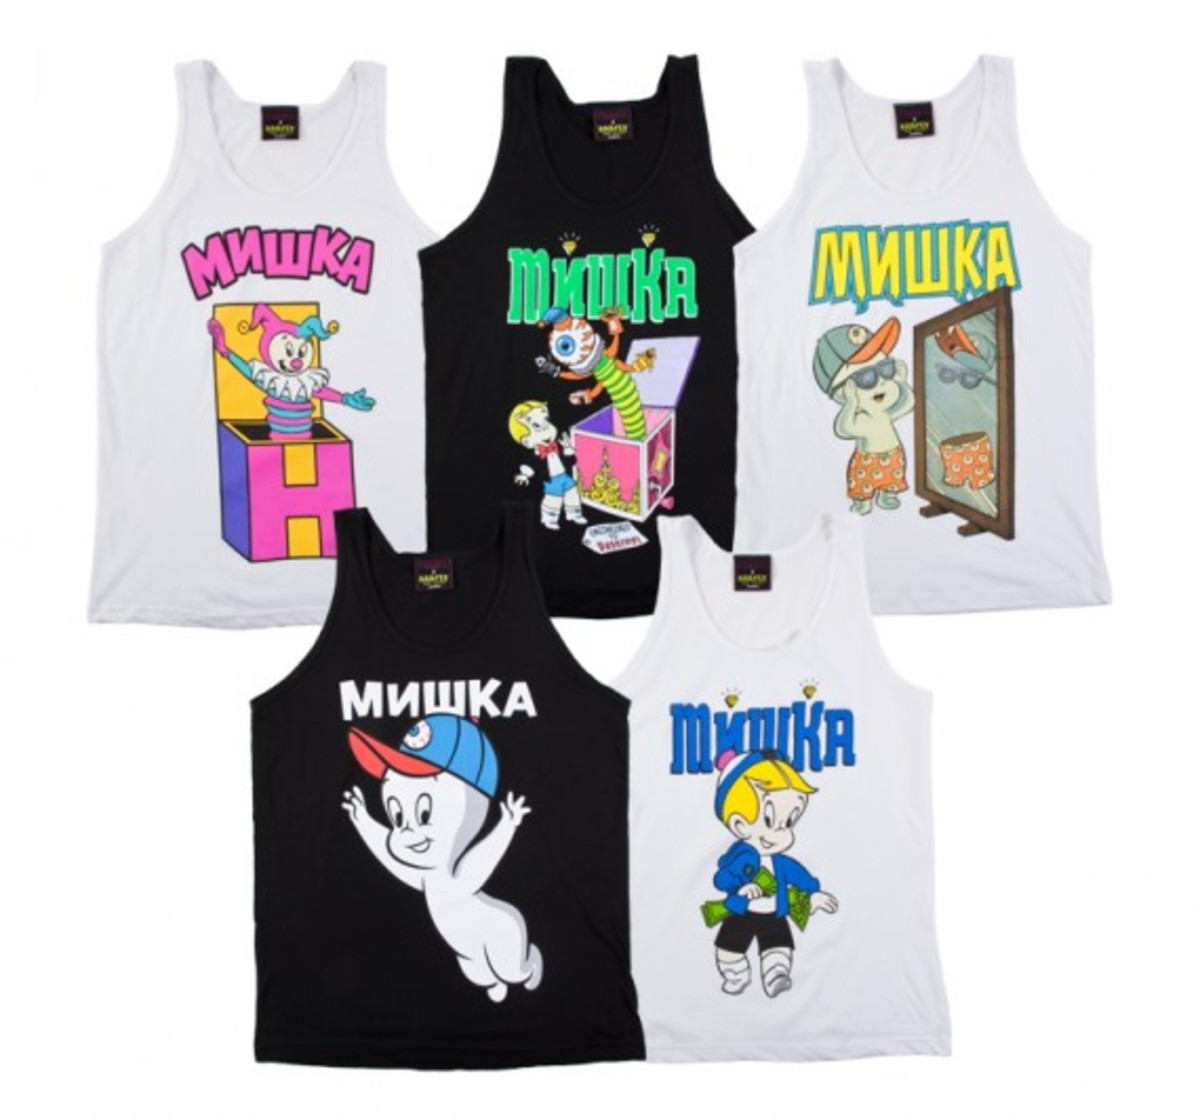 mishka-harvey-comics-capsule-collection-02